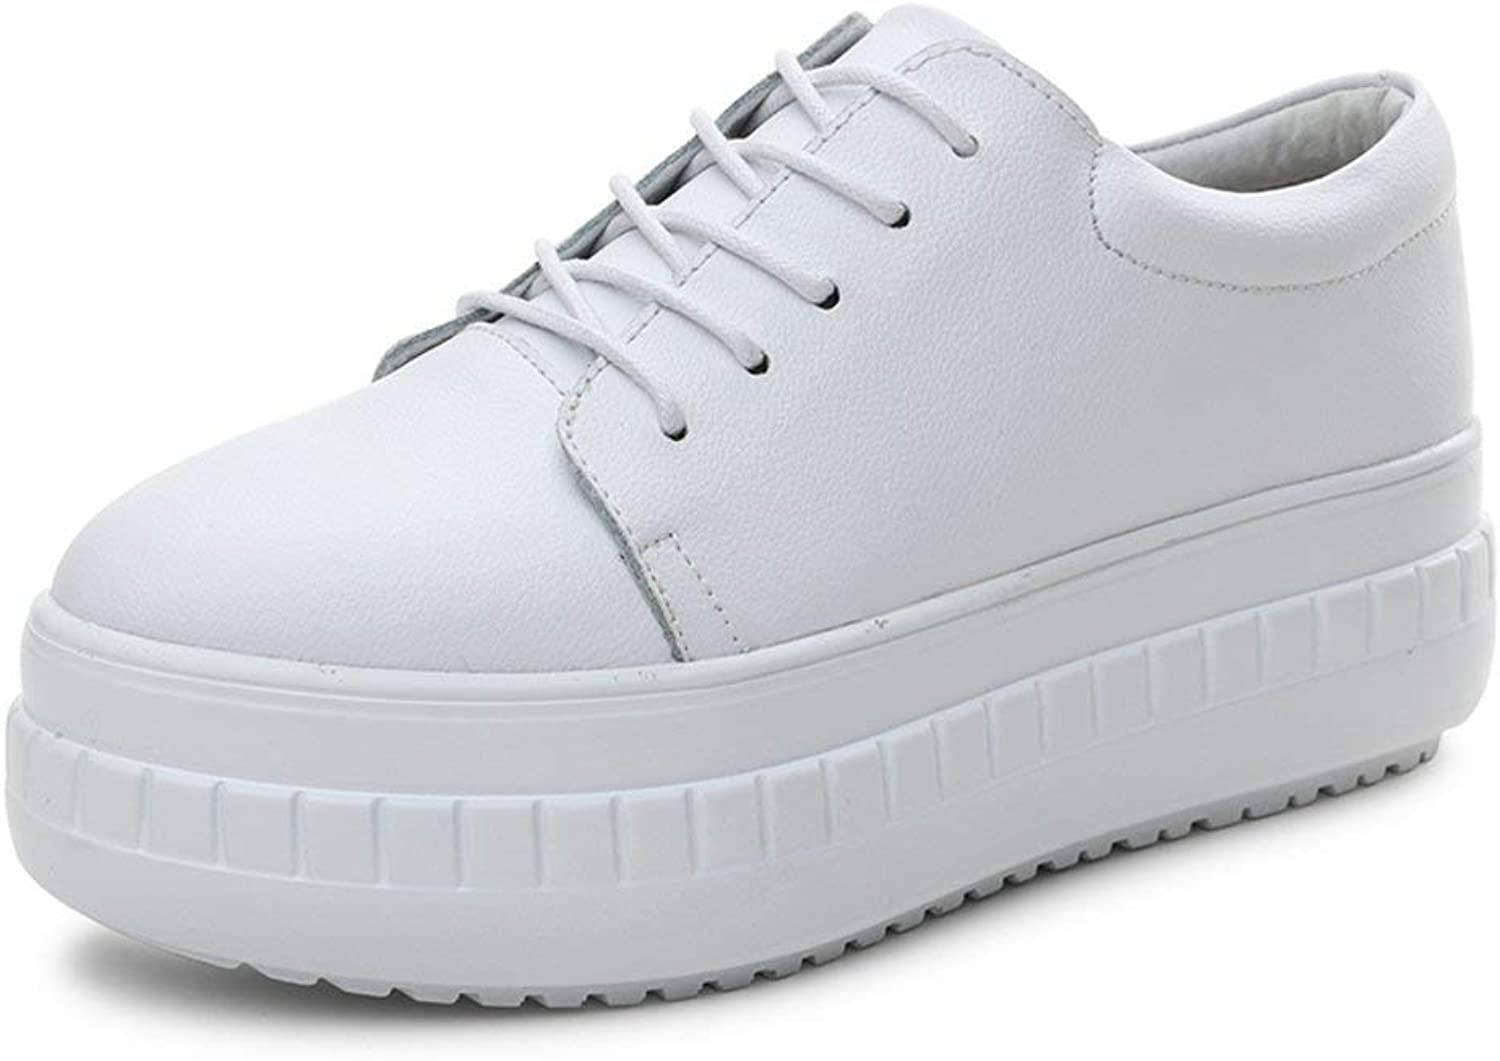 shoes Casual Versatile Leather White, Korean Style Thin, Thicken, White Casual